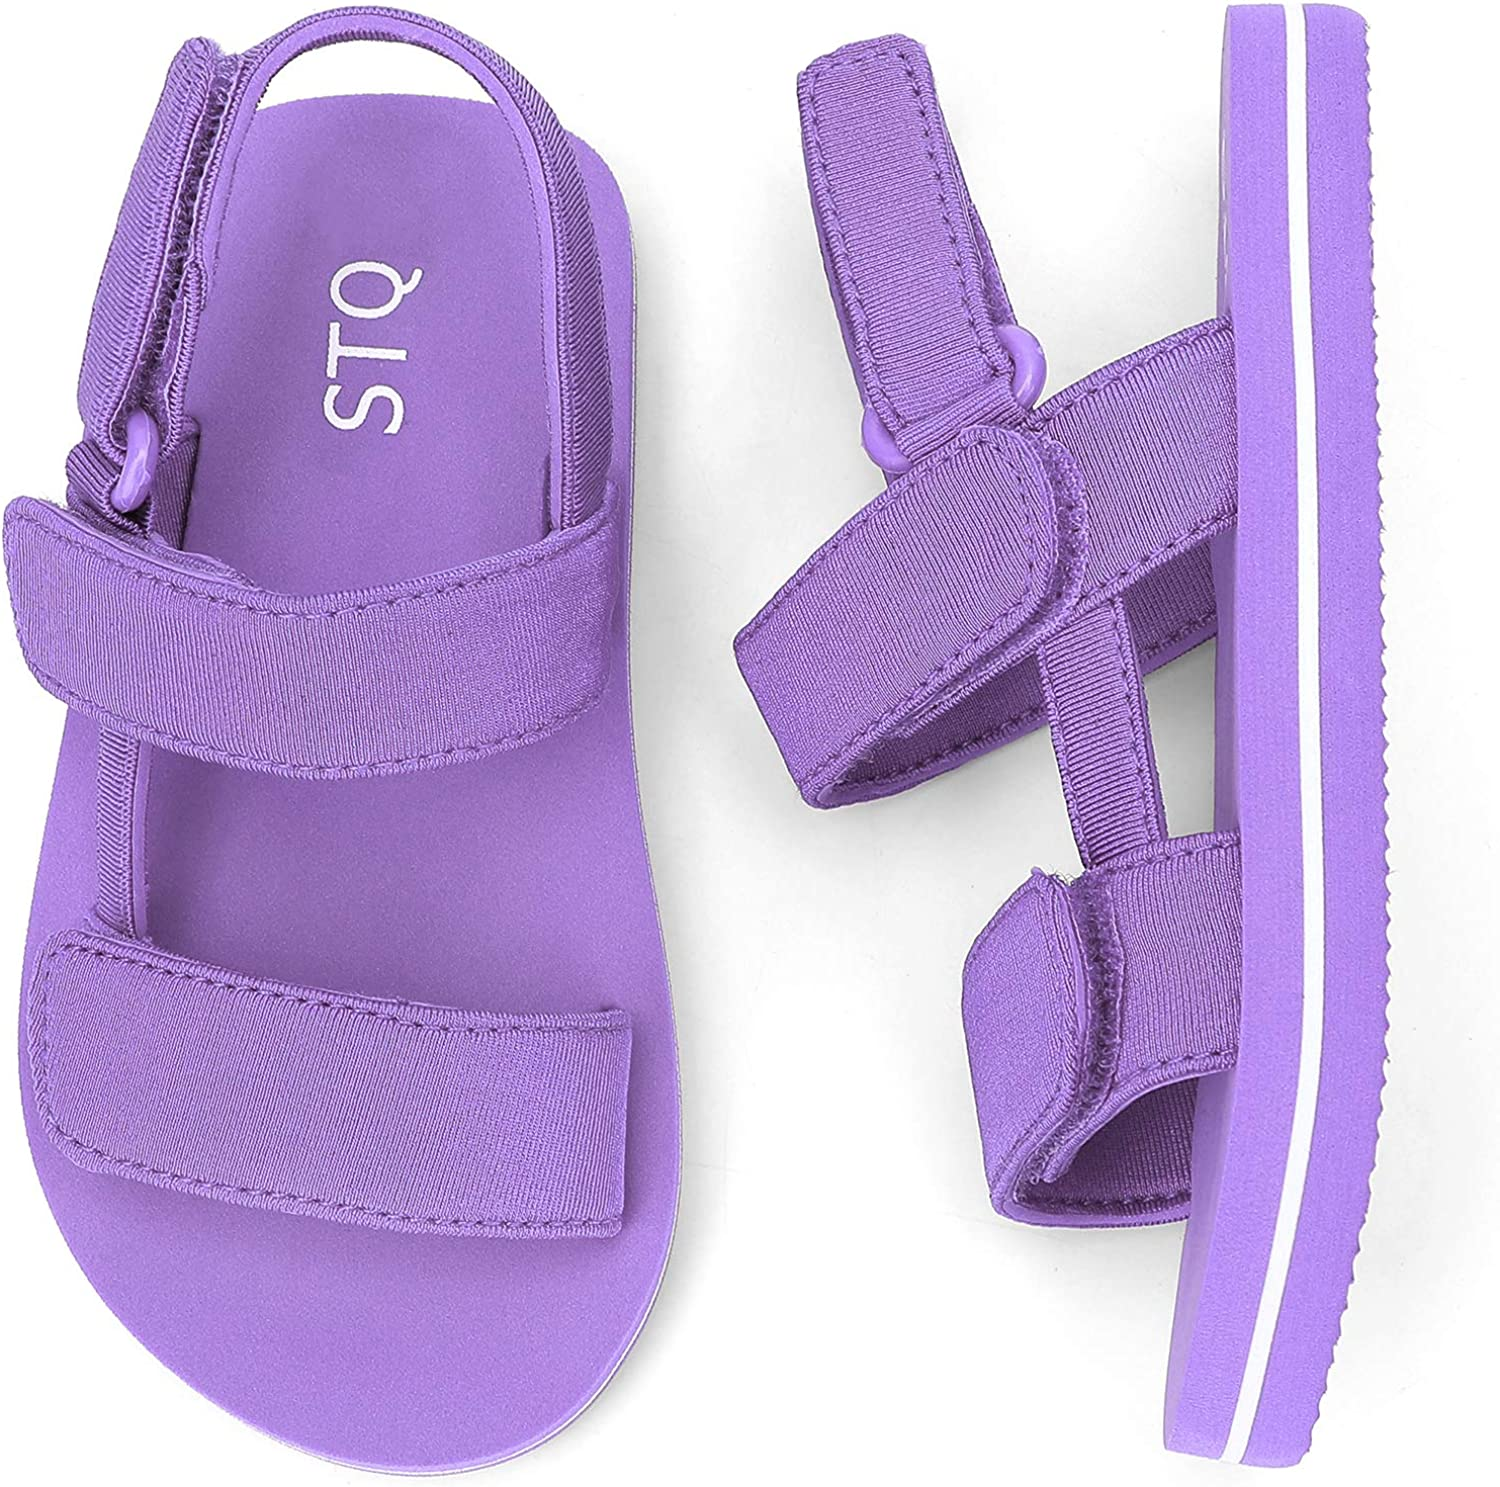 STQ Toddler Sandals Boys Free shipping anywhere in the nation Shipping included Girls Soft Open Beach Outdoor Toe Summe